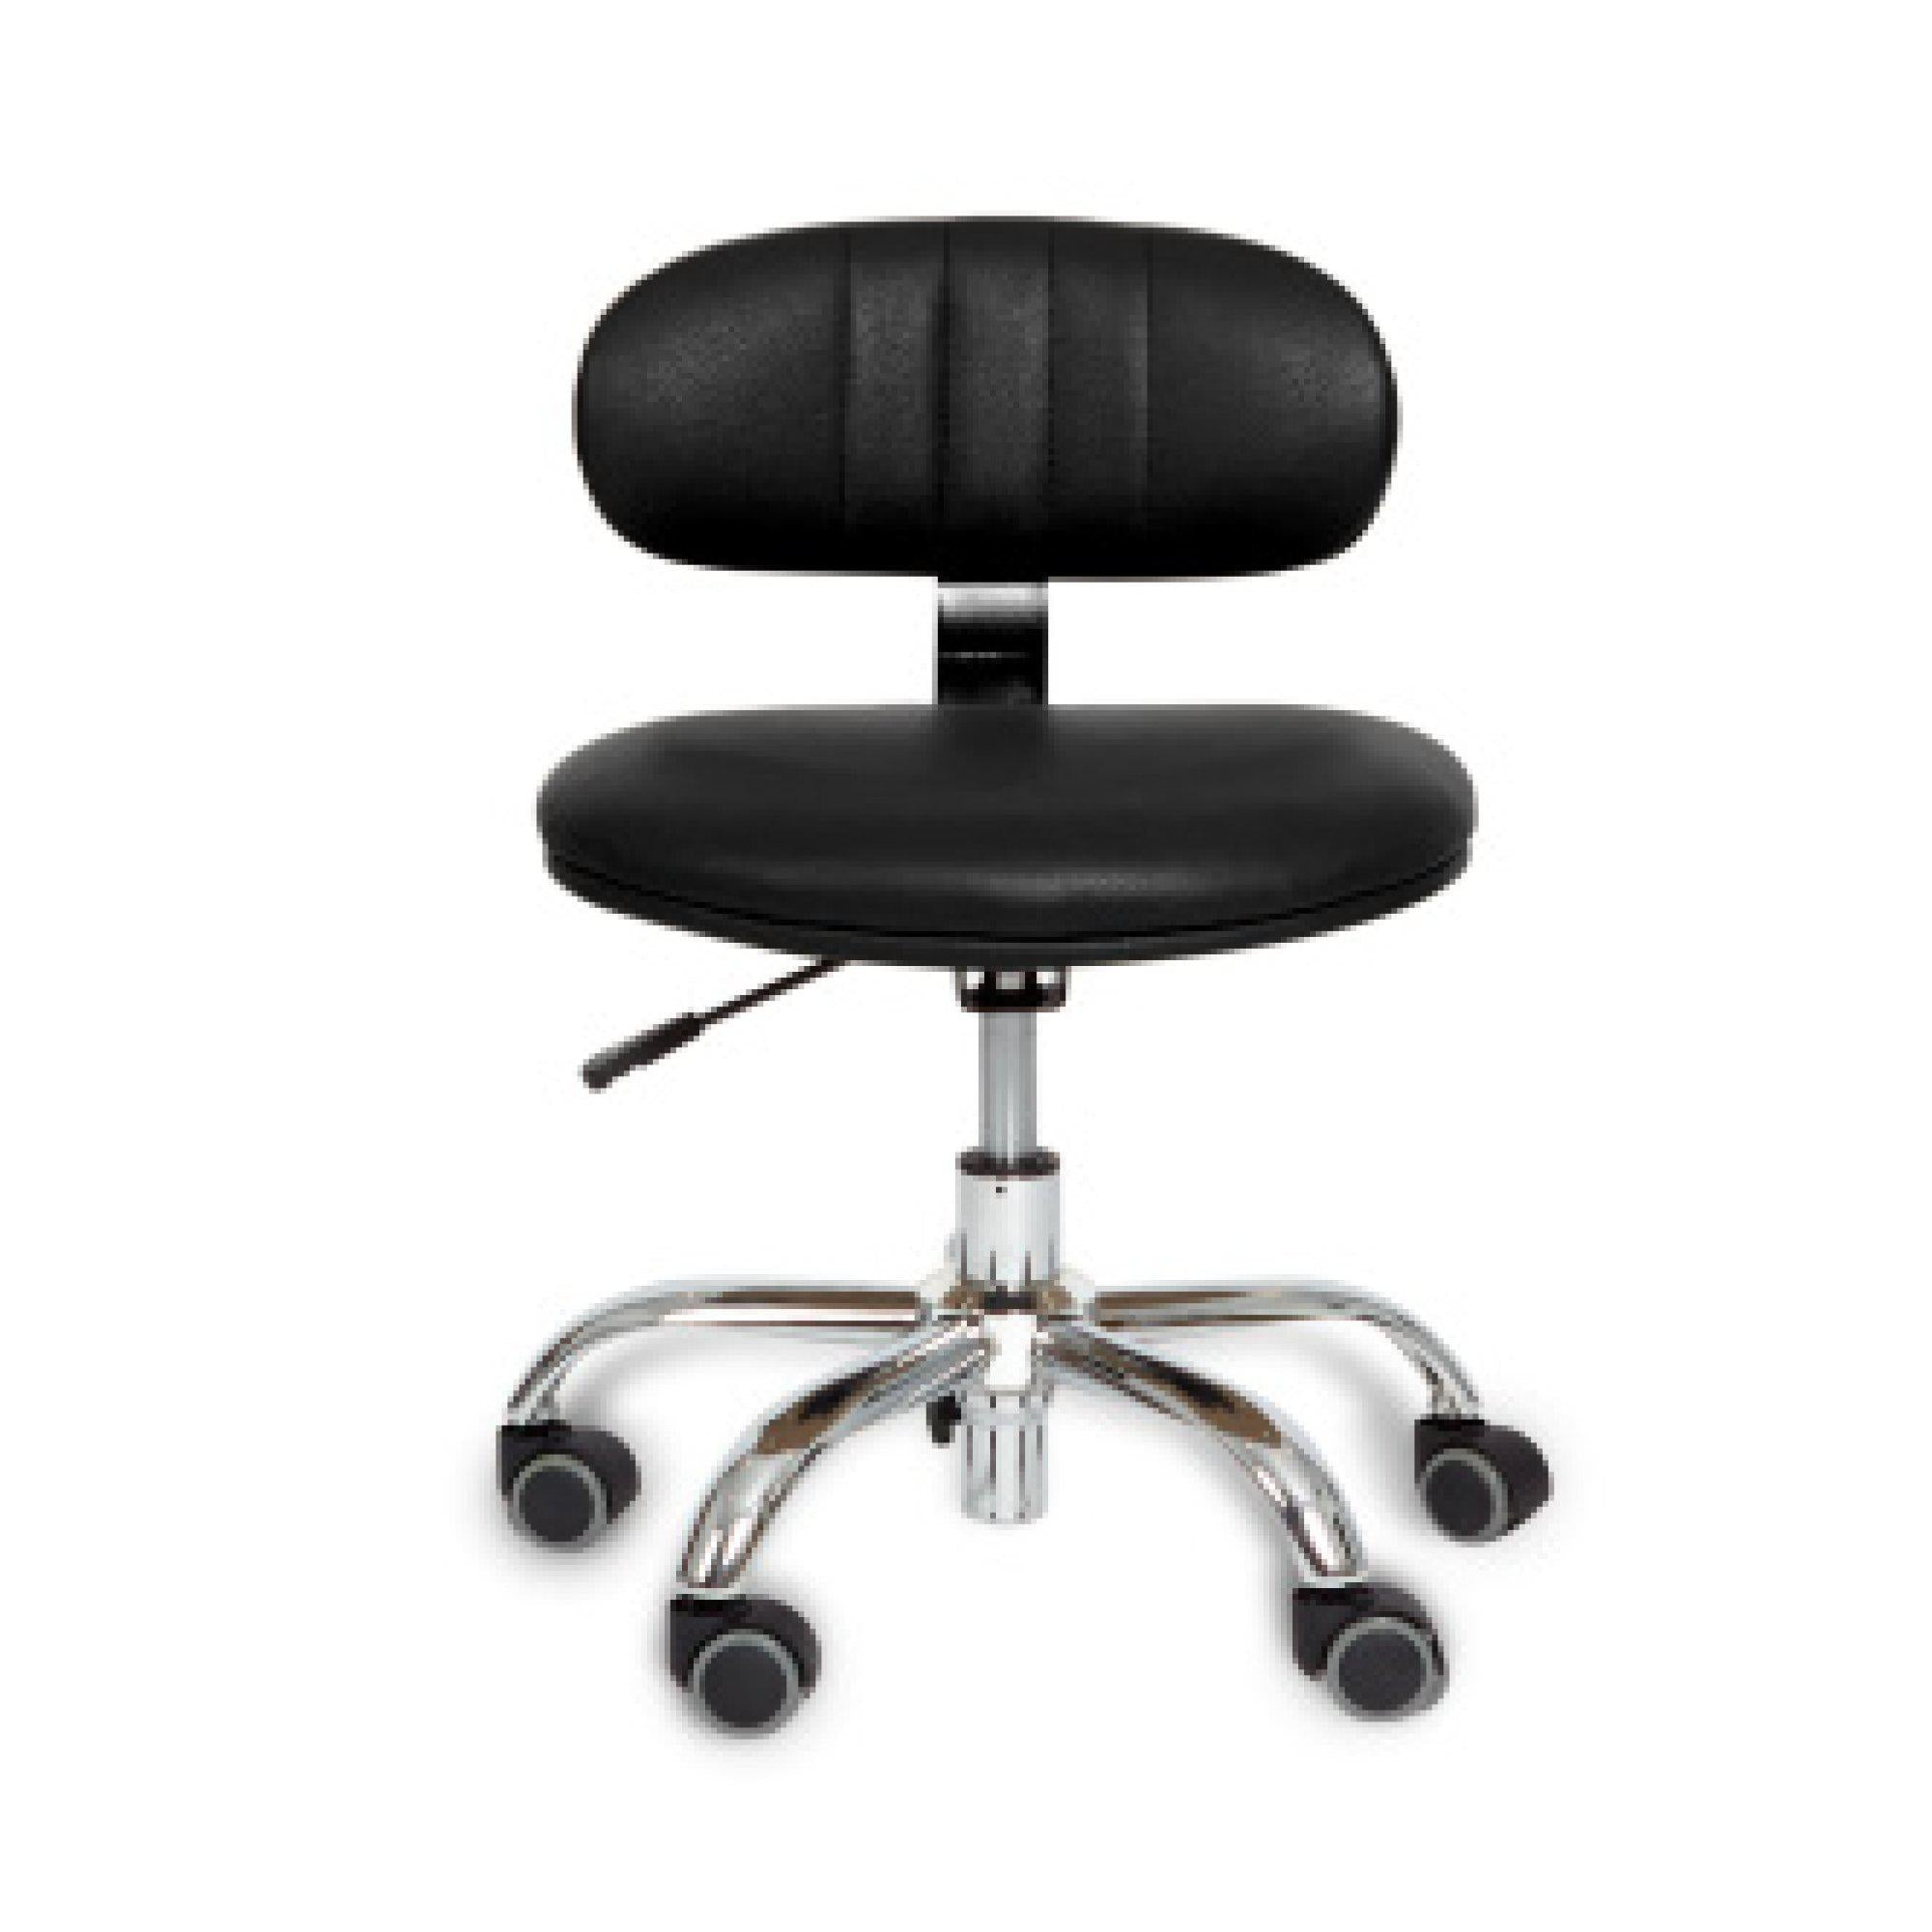 J & A - M Pedicure Technician Stool - Superb Nail Supply